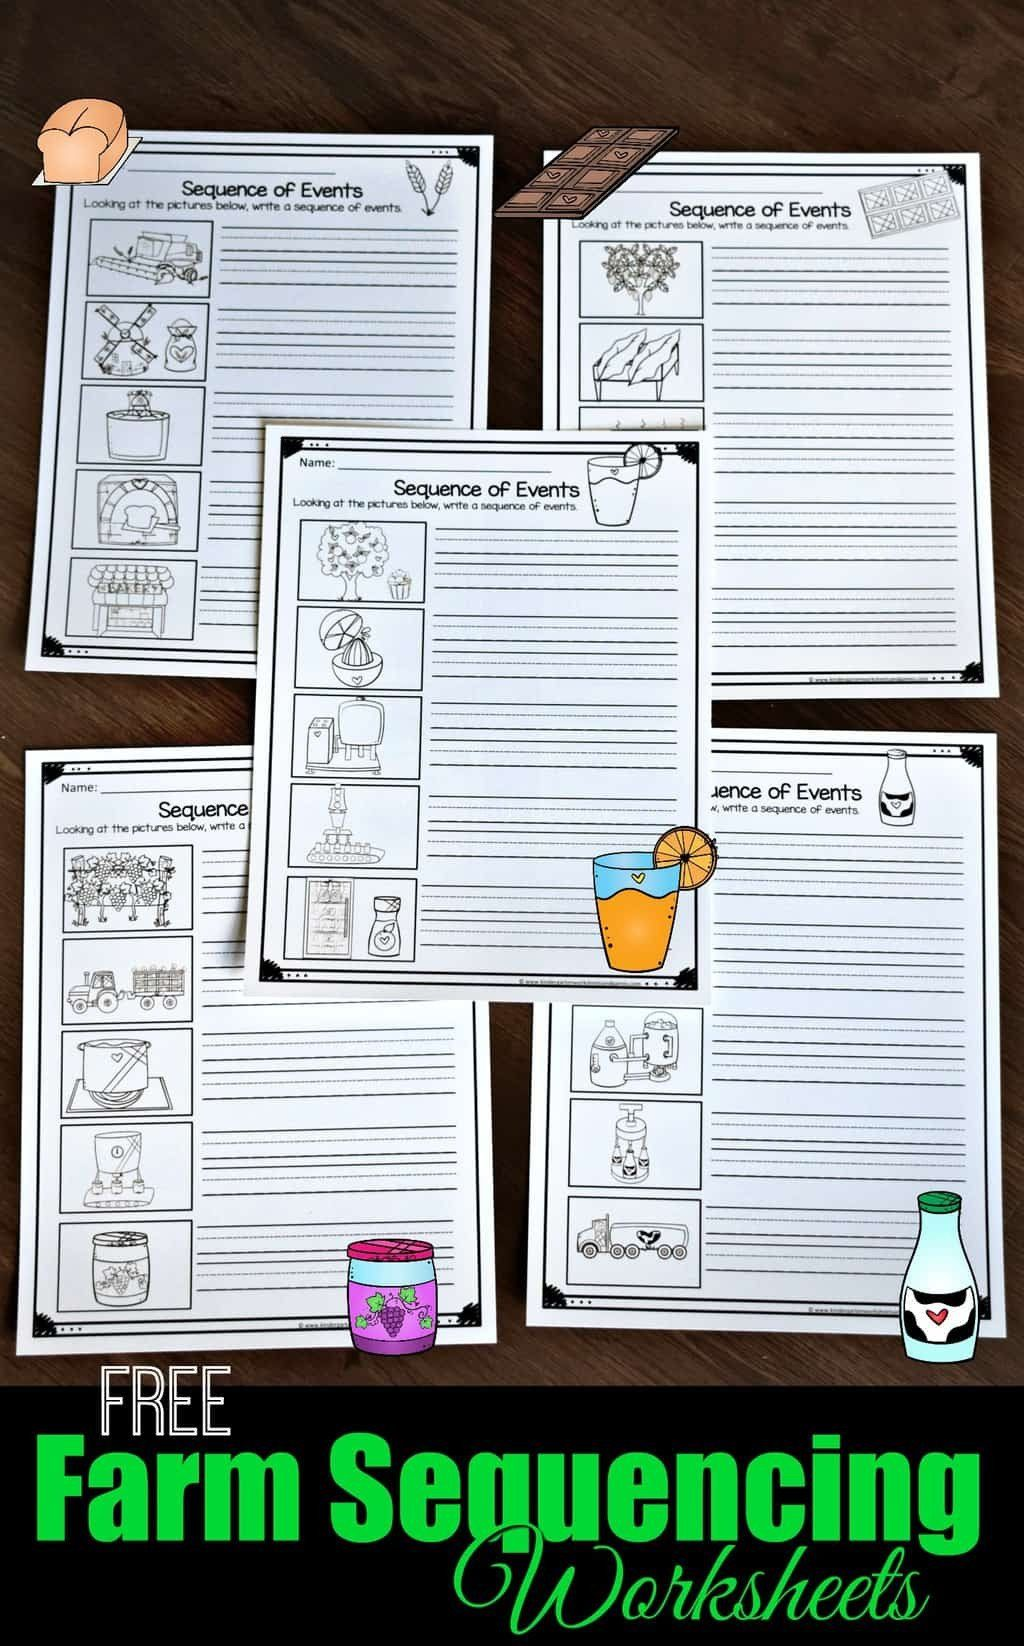 Free Printable Sequencing Worksheets Free Farm Sequencing